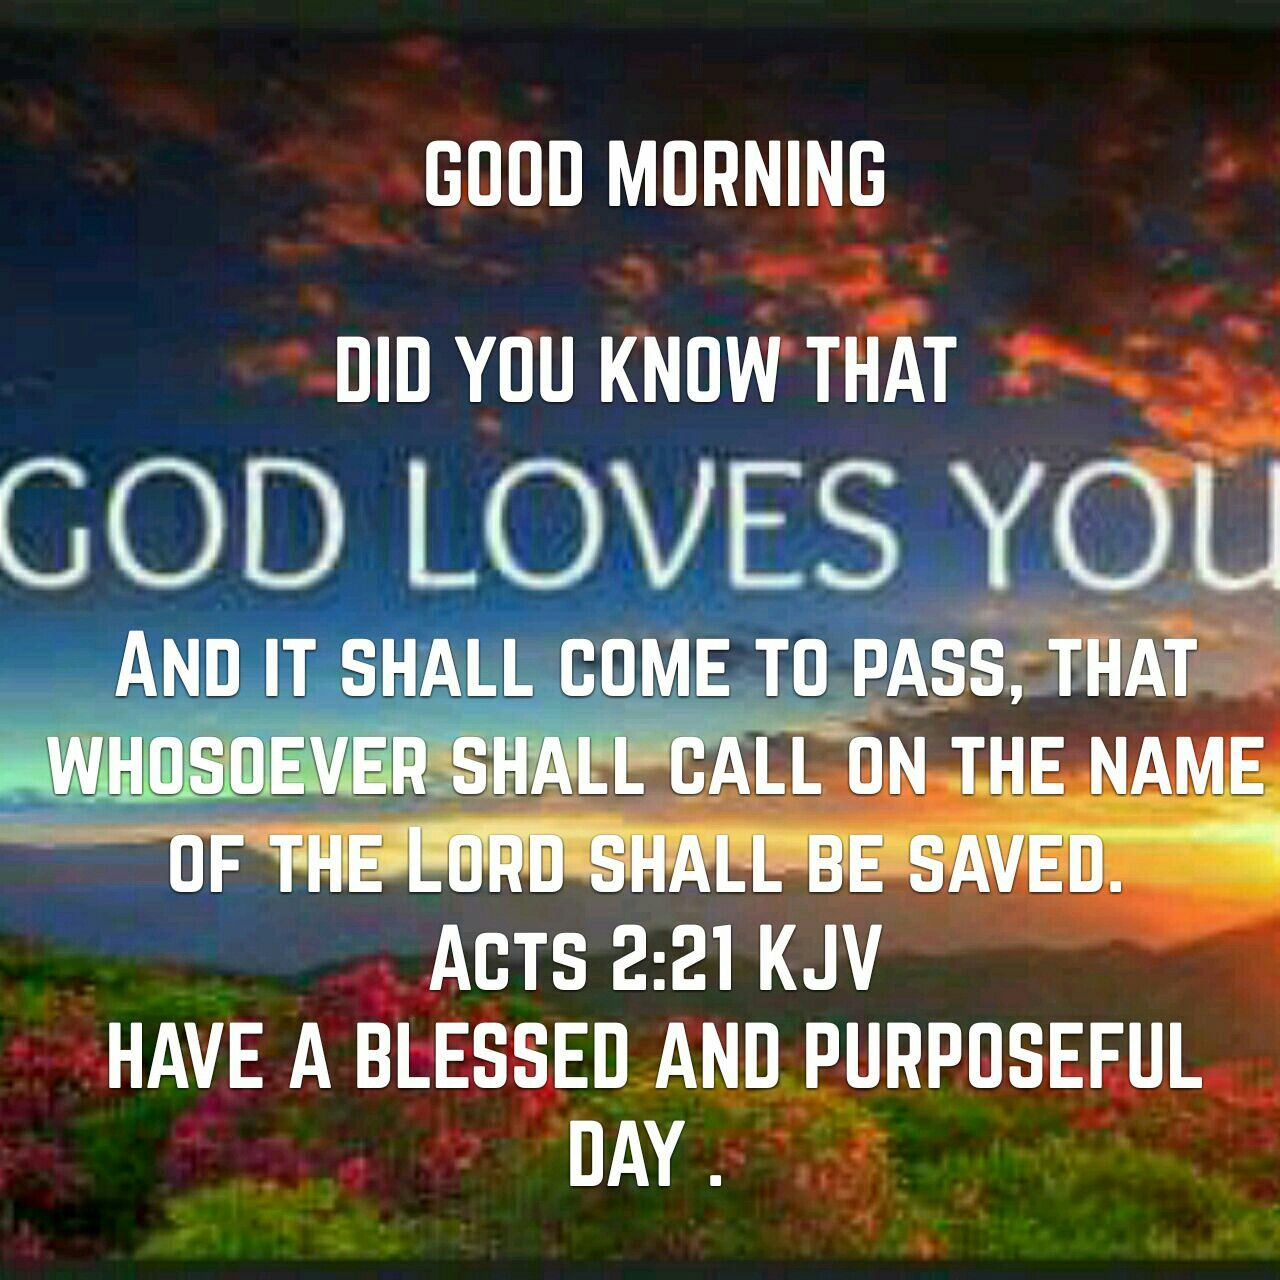 Pin by adella hall on greetings pinterest scriptures daily scripture good morning quotes scriptures good day quotes morning quotes bible verses scripture verses m4hsunfo